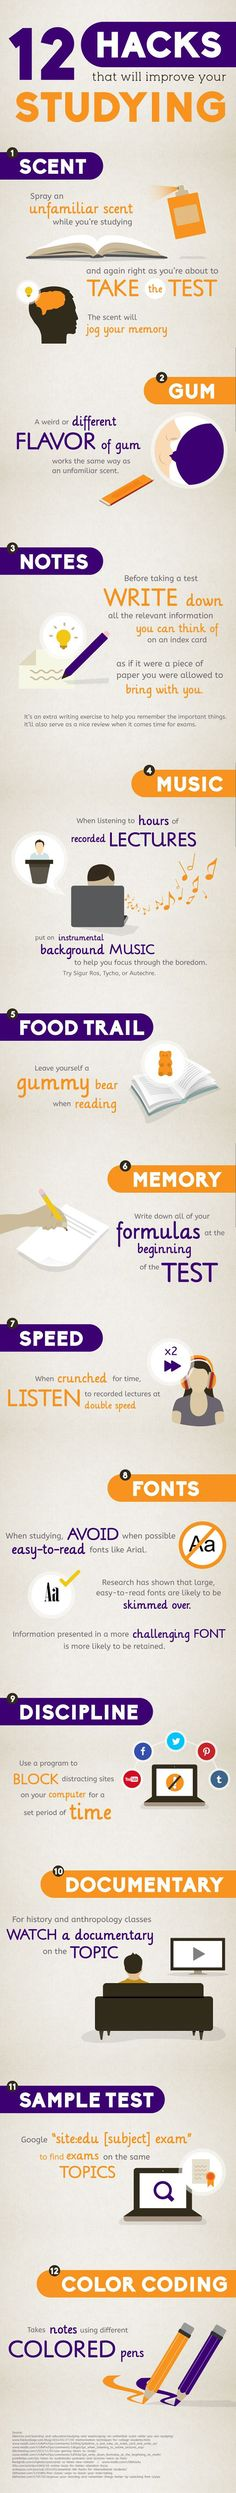 12 Hacks That Will Improve Your Studying #study #tips